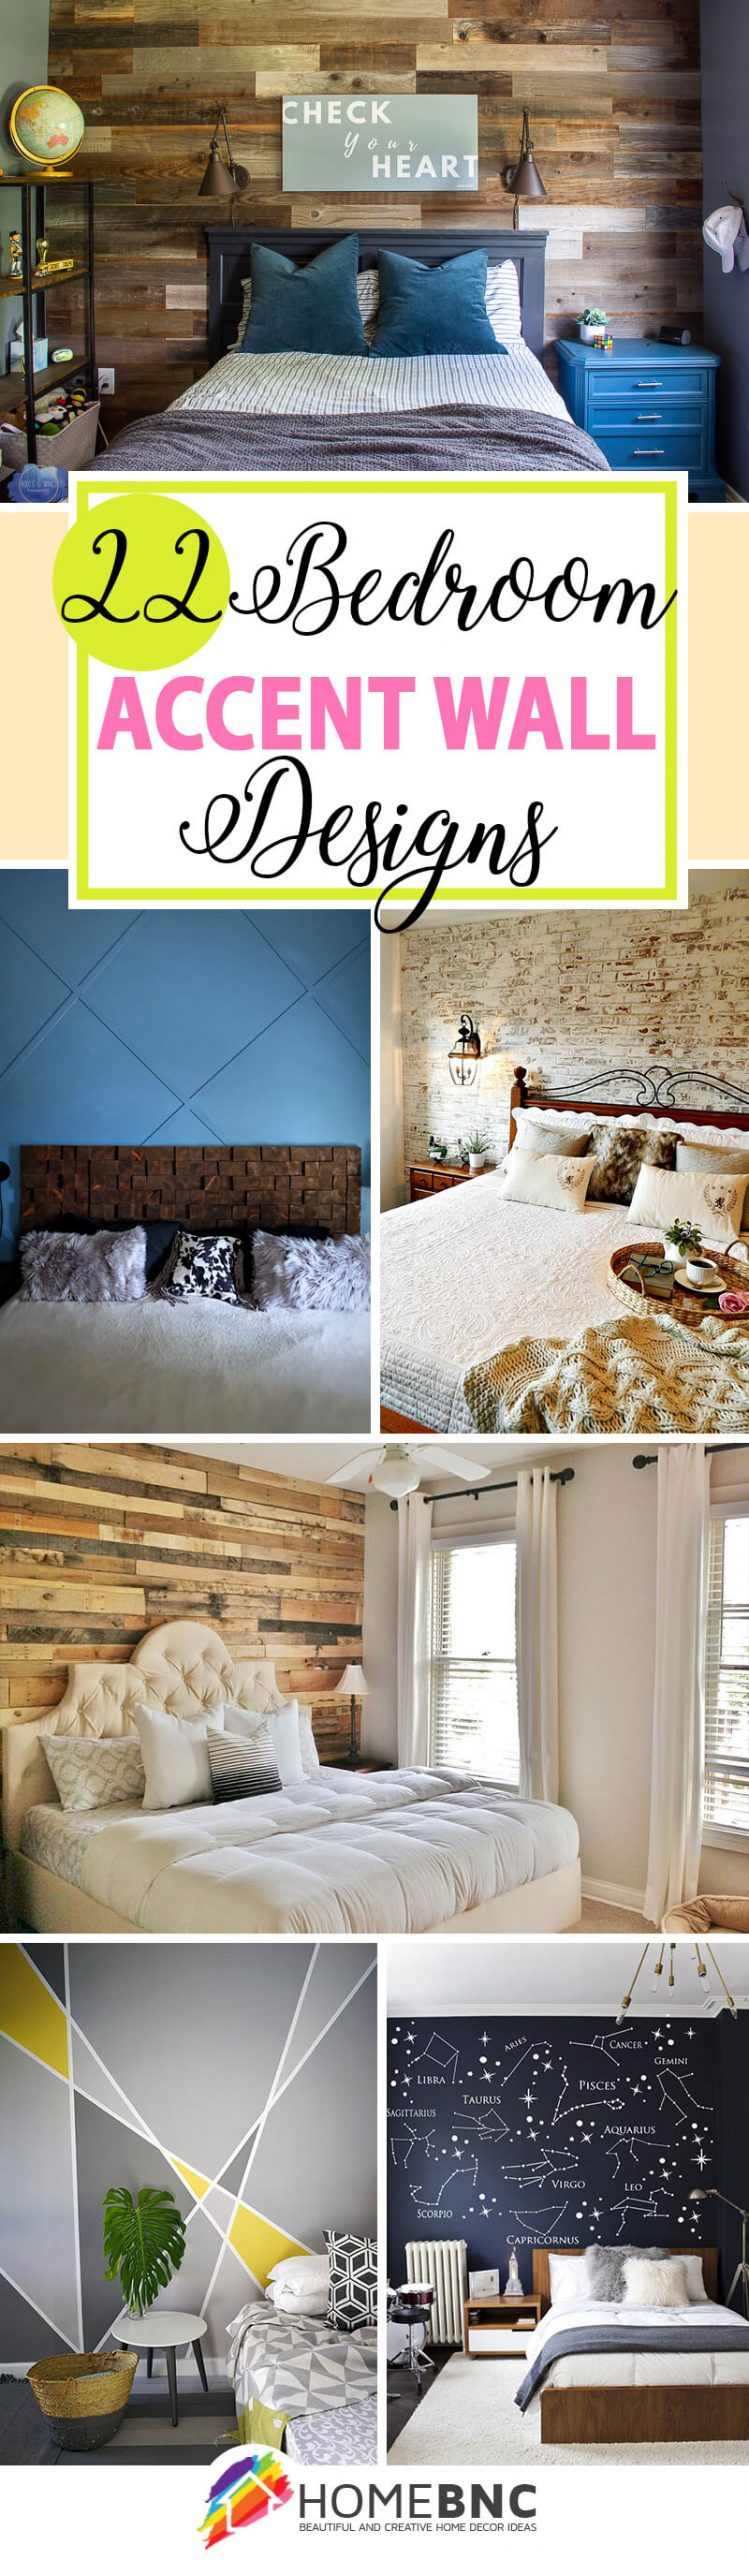 22 Best Bedroom Accent Wall Design Ideas To Update Your Space In 2021